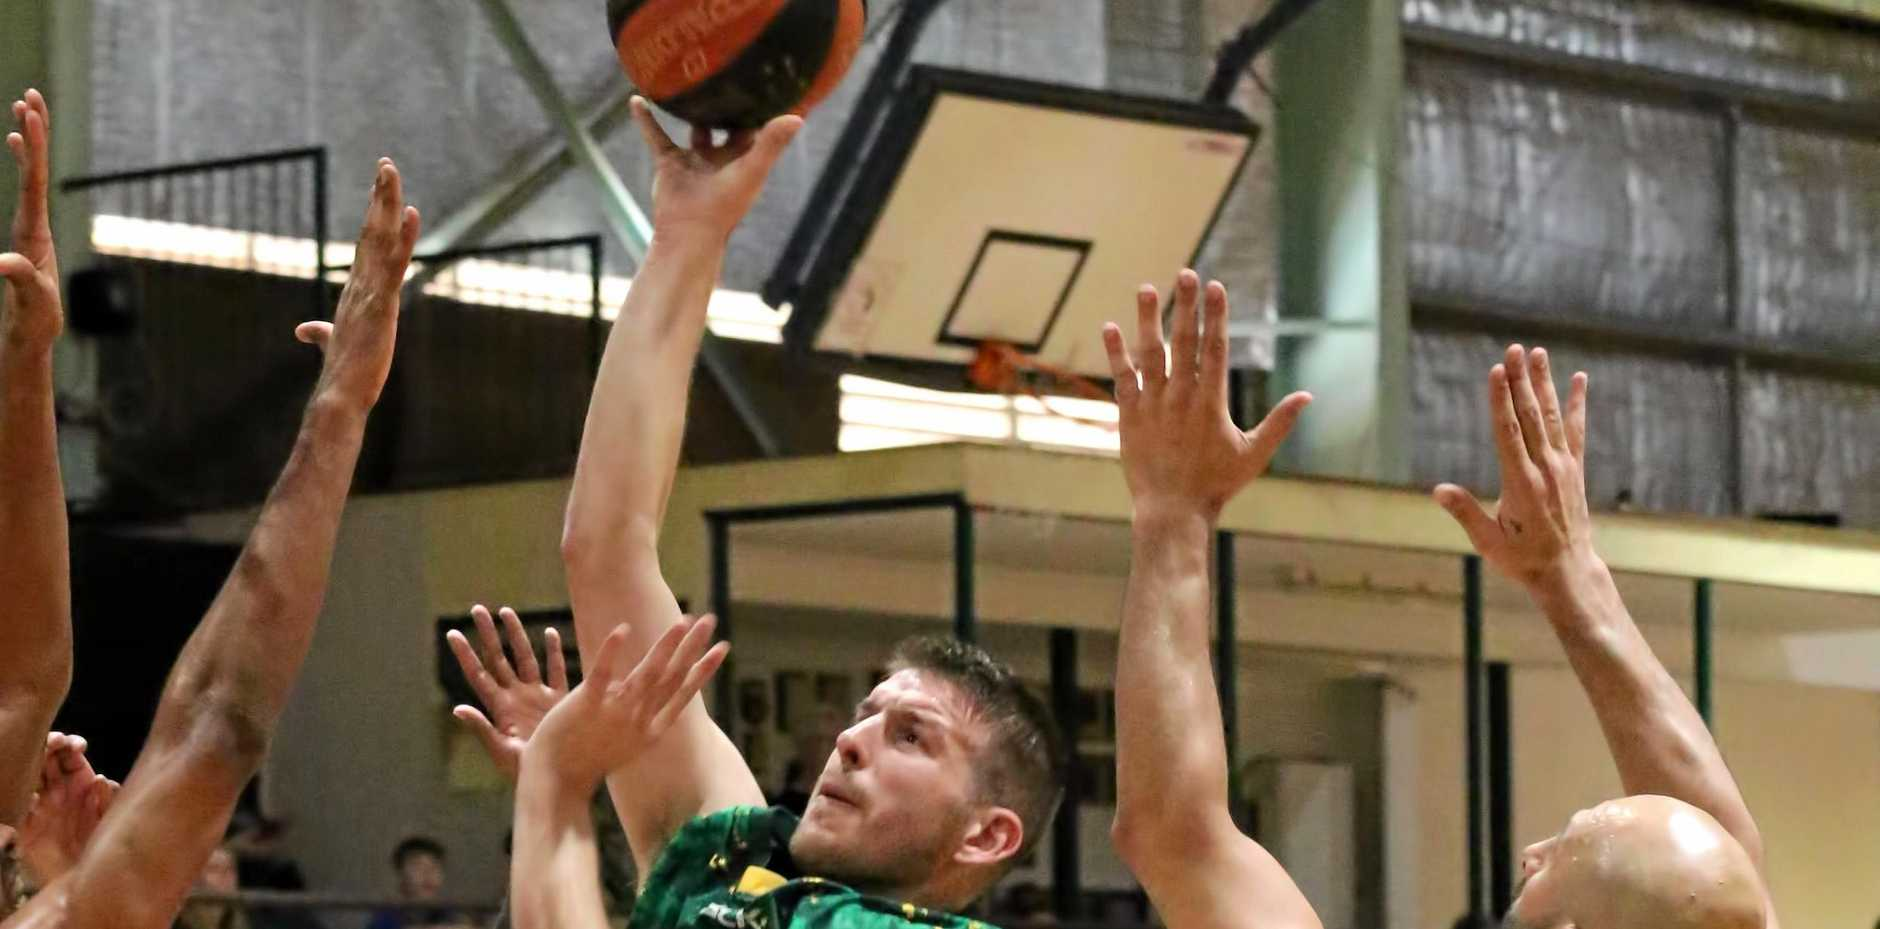 Ipswich Force vice-captain Kyle Harvey makes a determined leap in his QBL match against Logan. He top scored with 36 points in his team's latest victory over Brisbane Capitals on Saturday night.